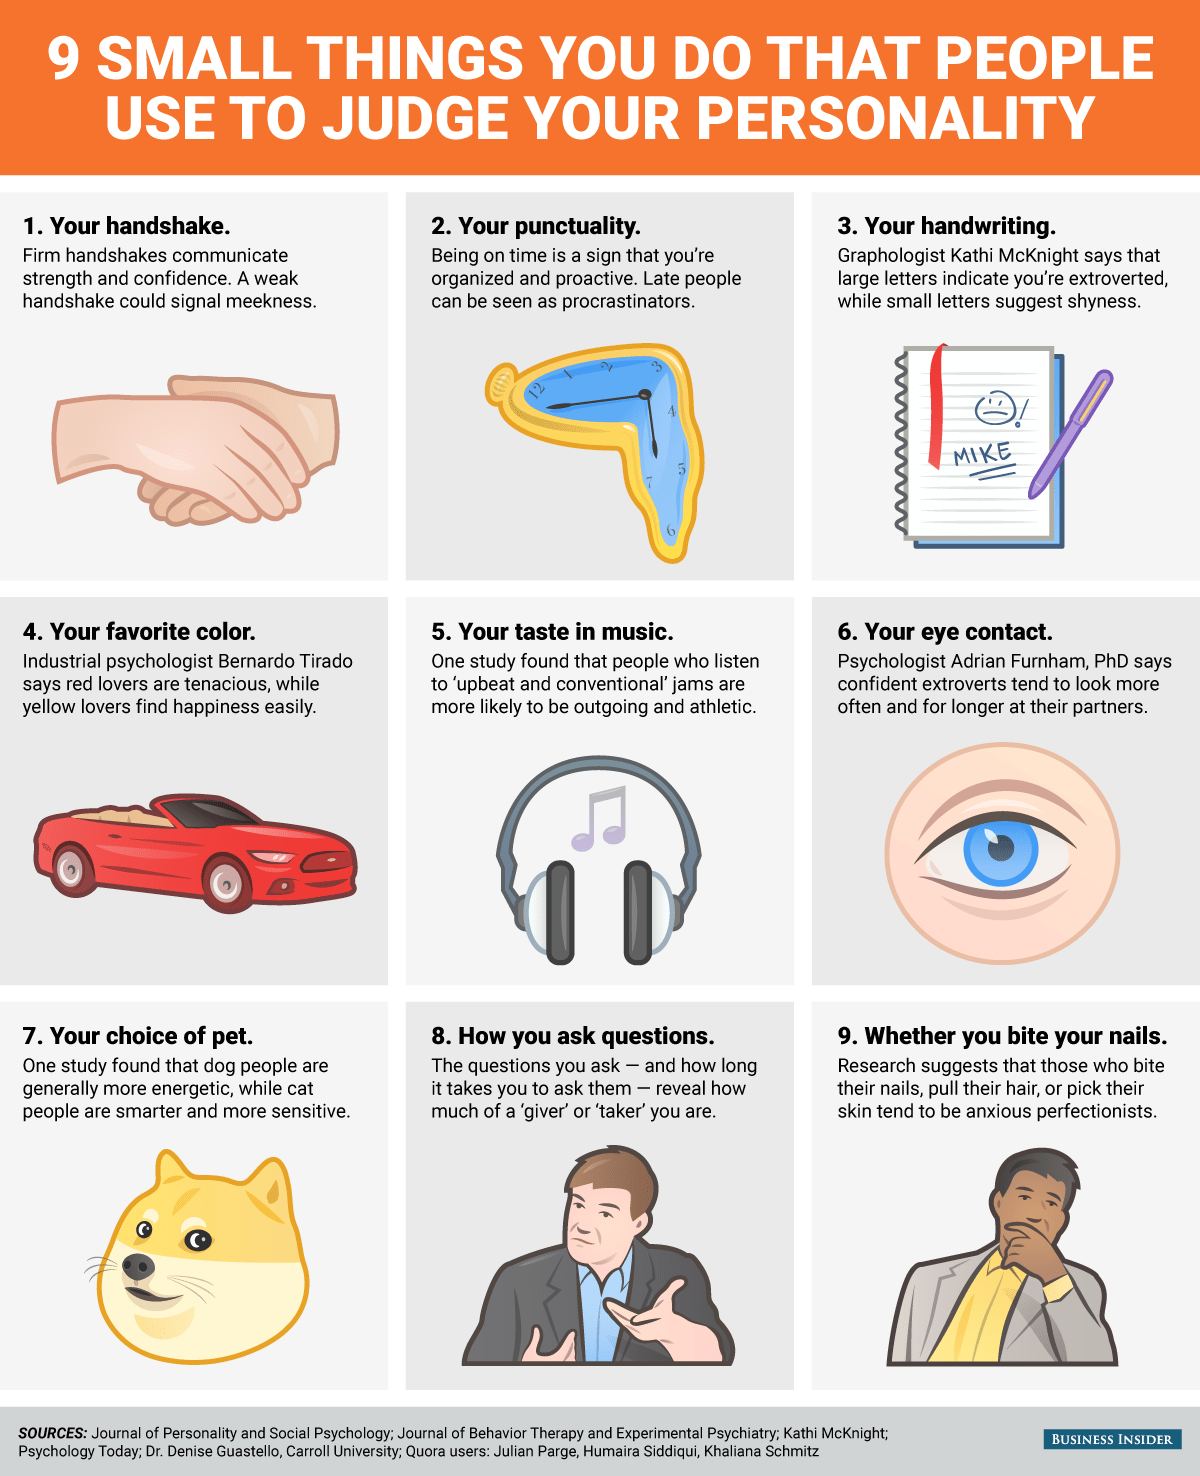 9 Small Things You Do That People Use To Judge Your